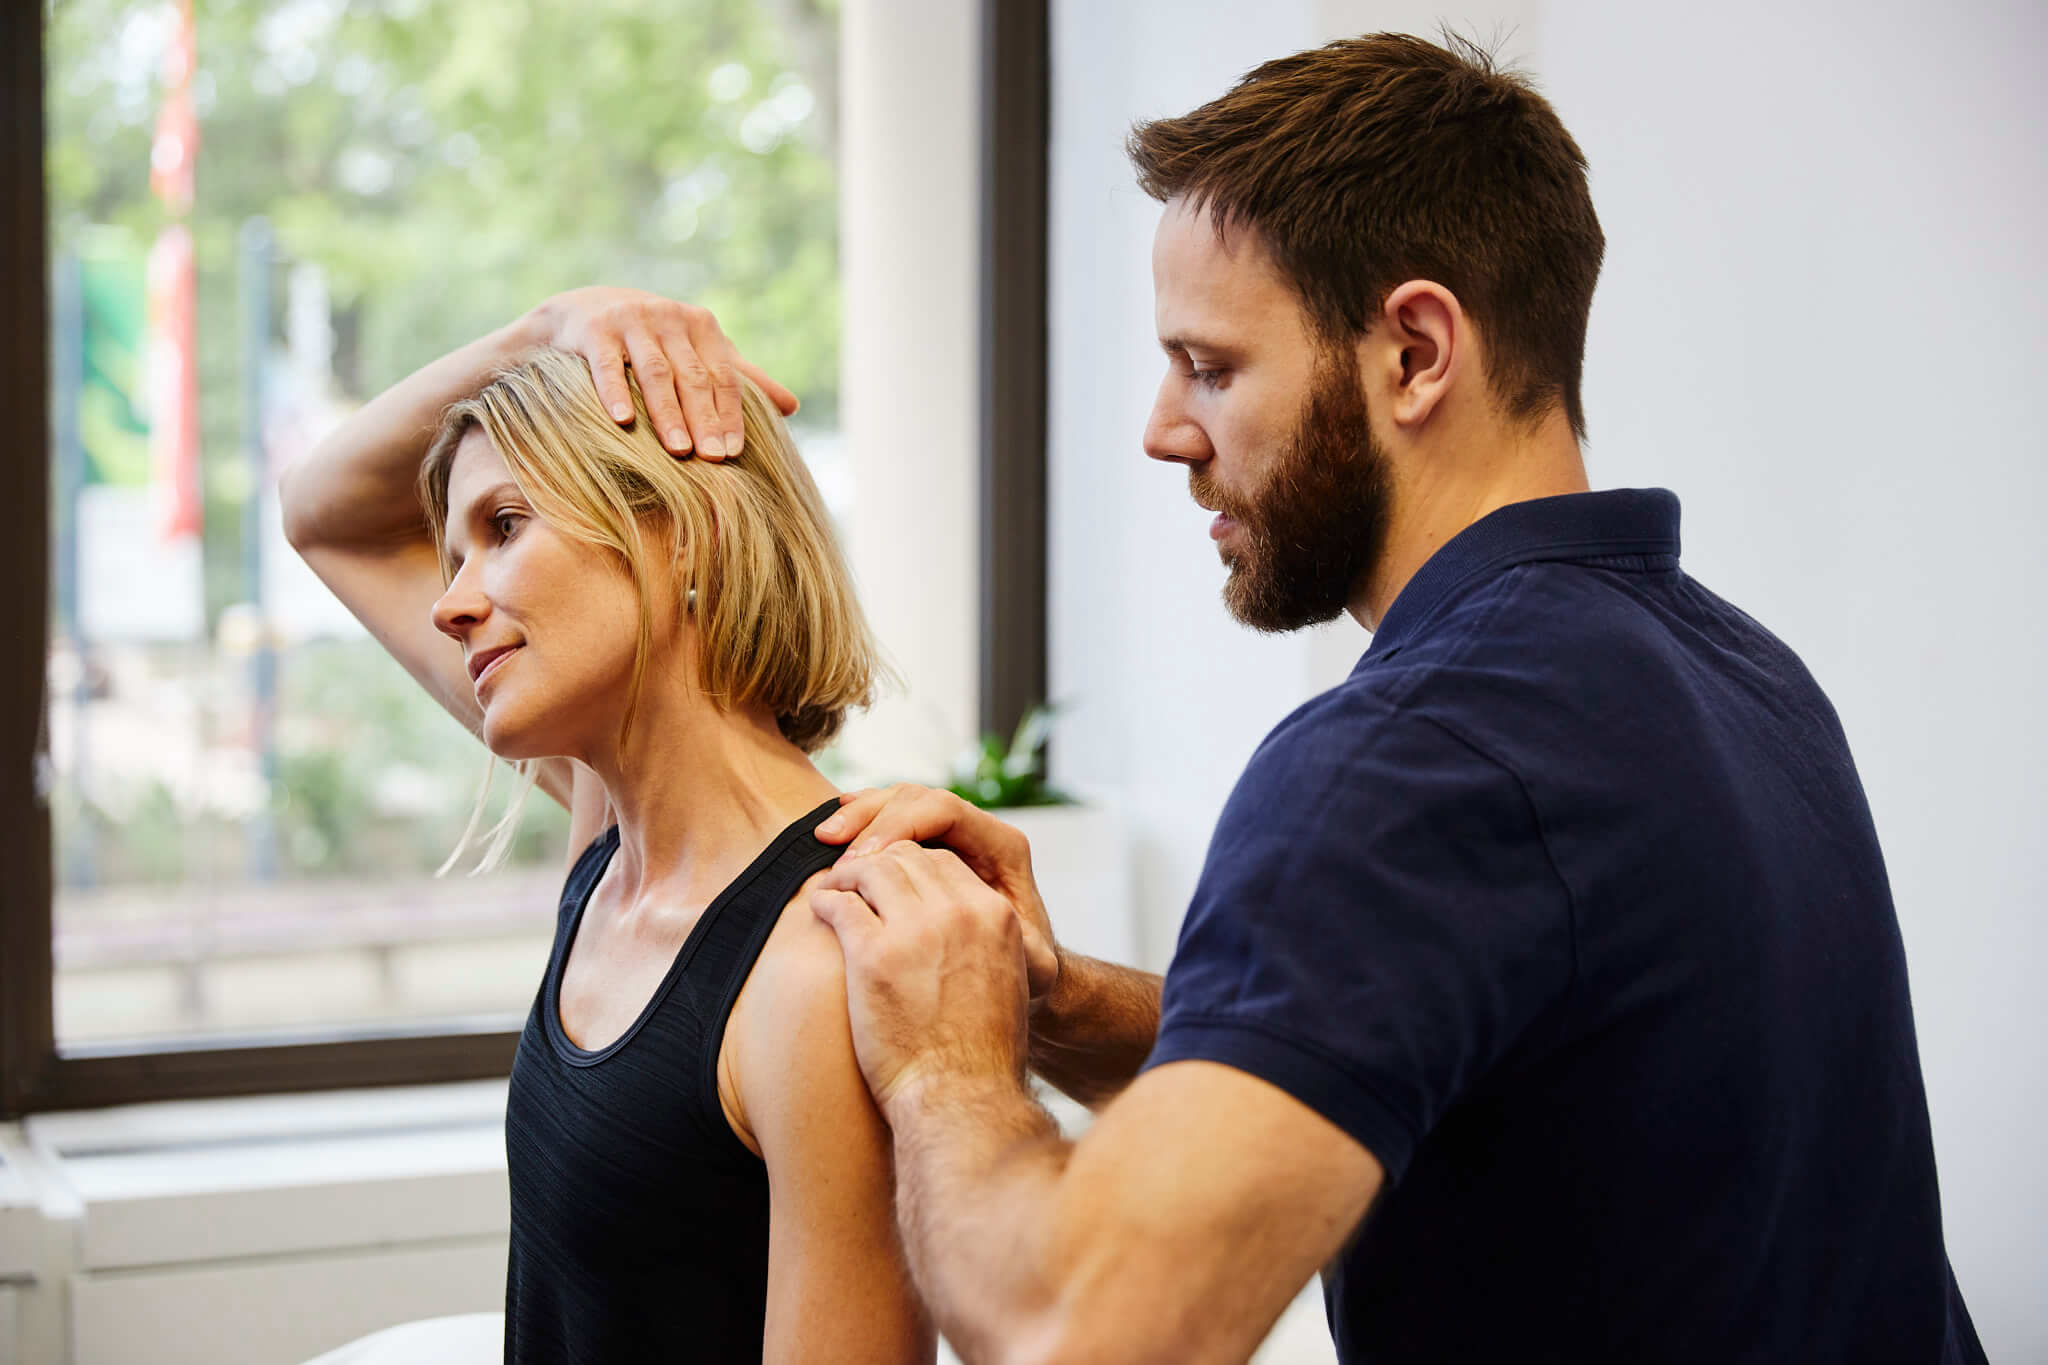 physiotherapy in Sydney